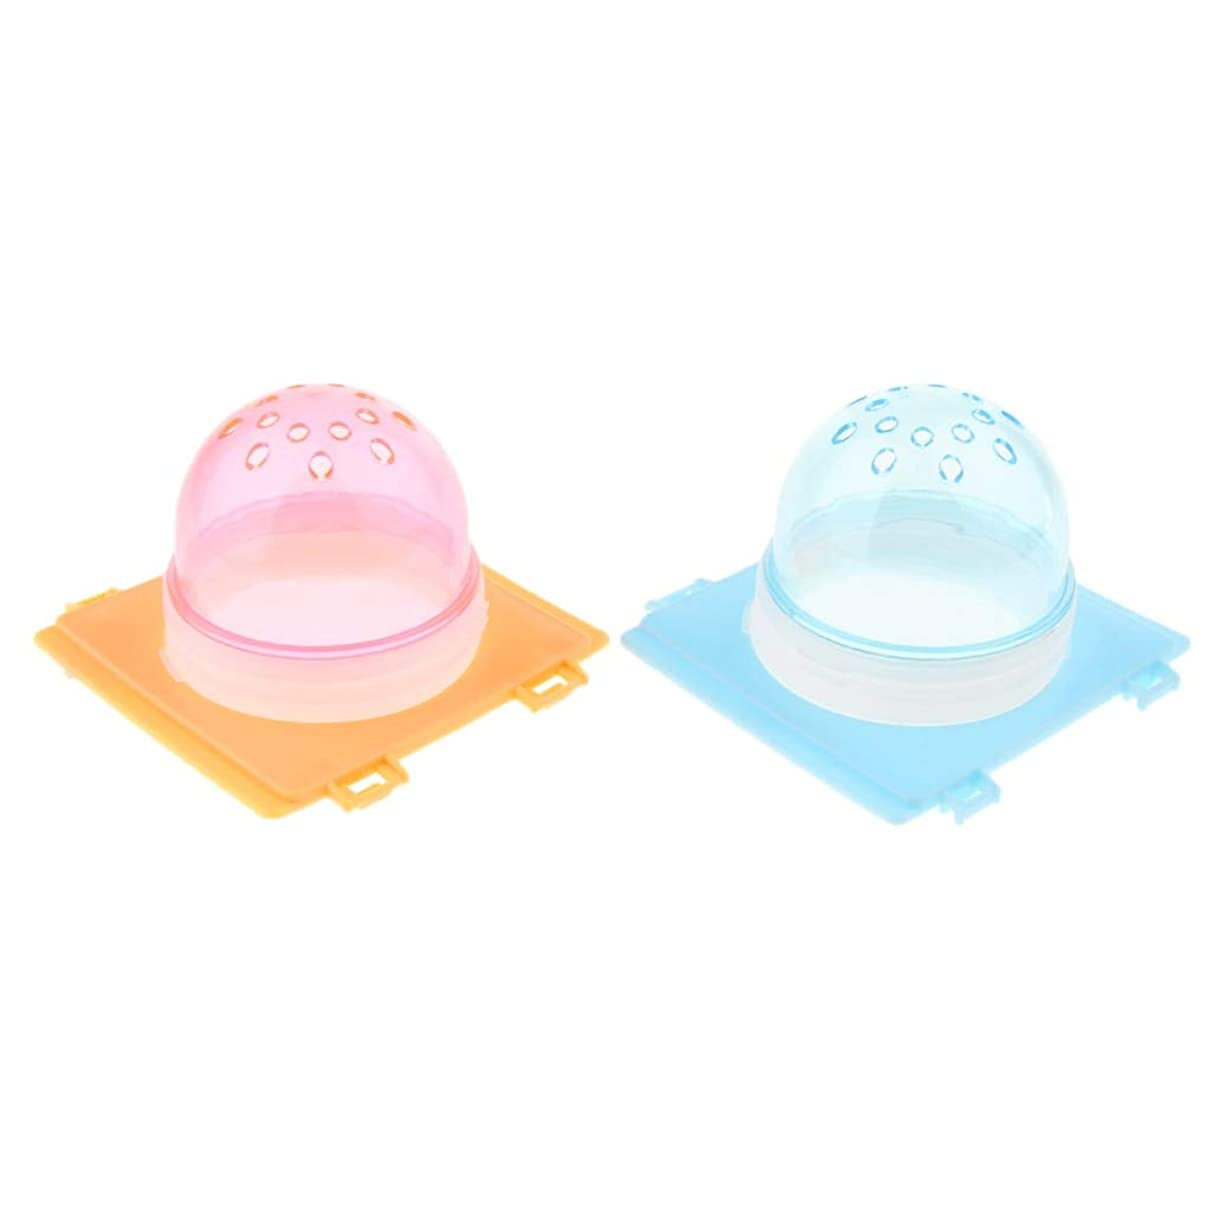 Hamster Pet - 2 Pcs Small Animals Cage Hamster Tunnel Plugs - Cover Carrier Redmi Note House Tunnel Taonmeisu Castle Gift Footbal Xiaomi Case Soccer Cage Guinea Hideout Wooden Tube Bola Ferret